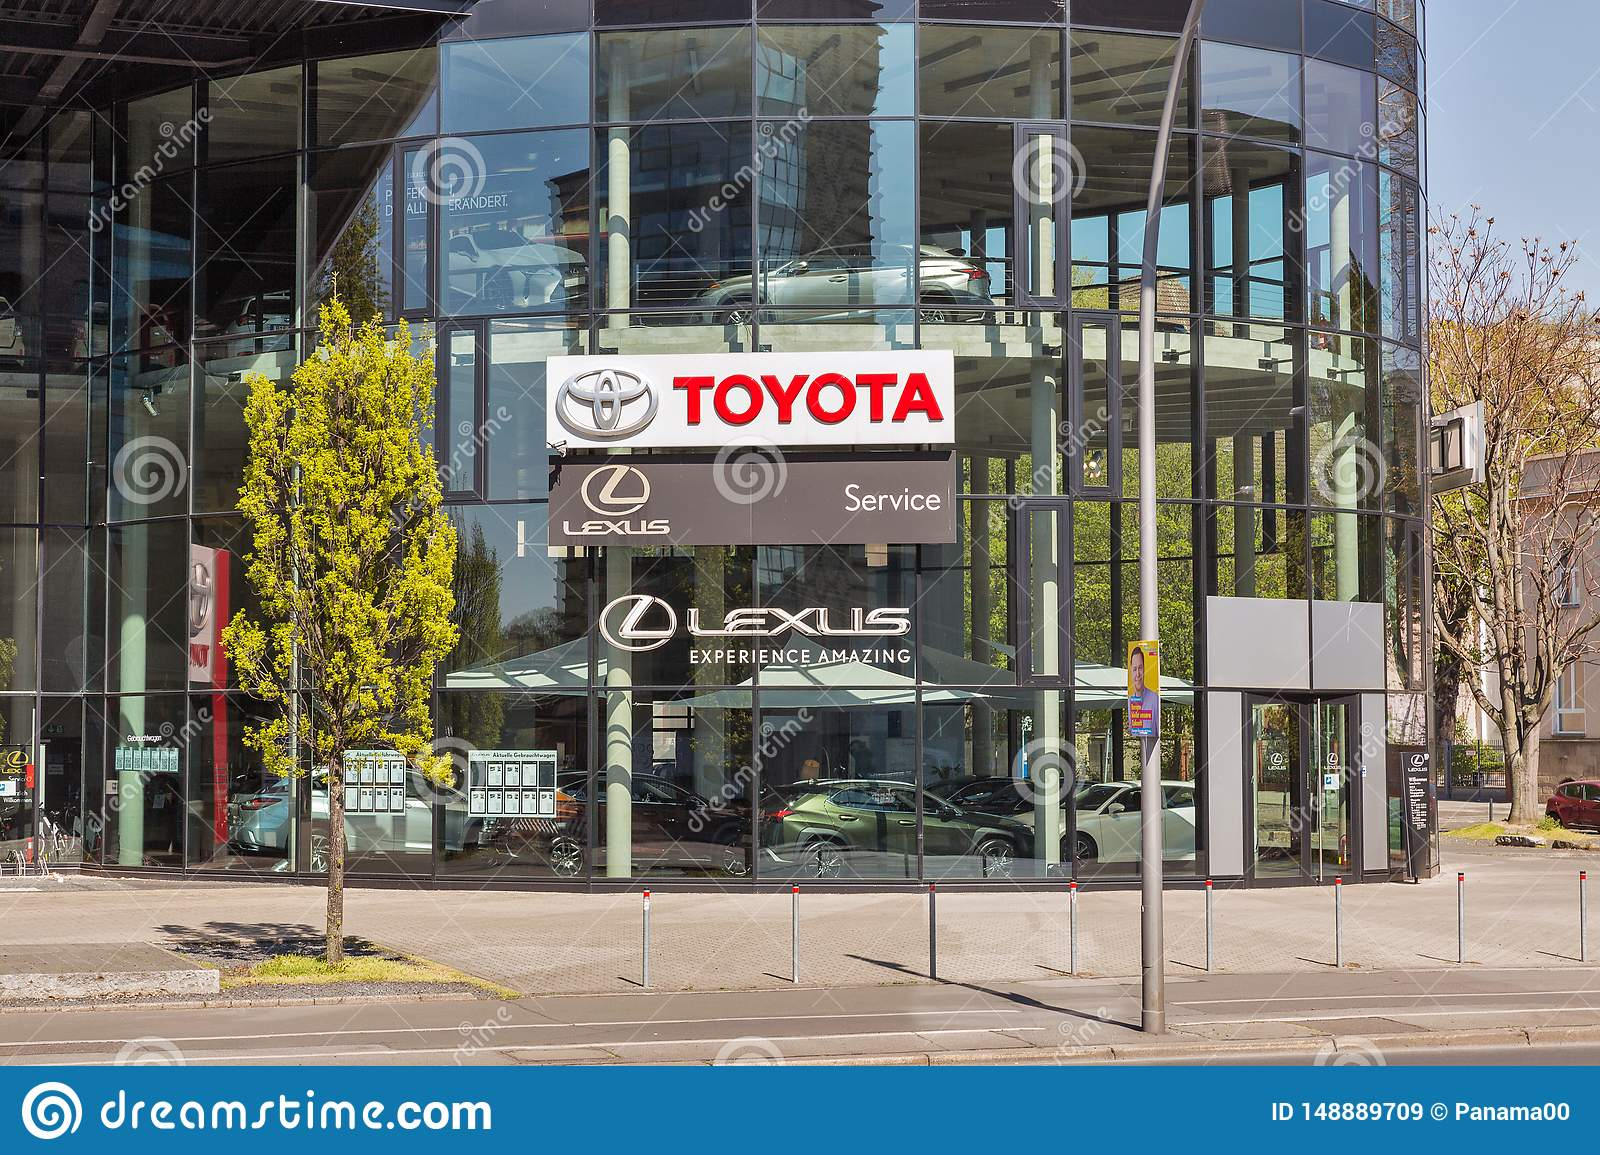 Toyota Lexus Car Showroom Exterior In Berlin Germany Editorial Stock Image Image Of Fuel Entrance 148889709